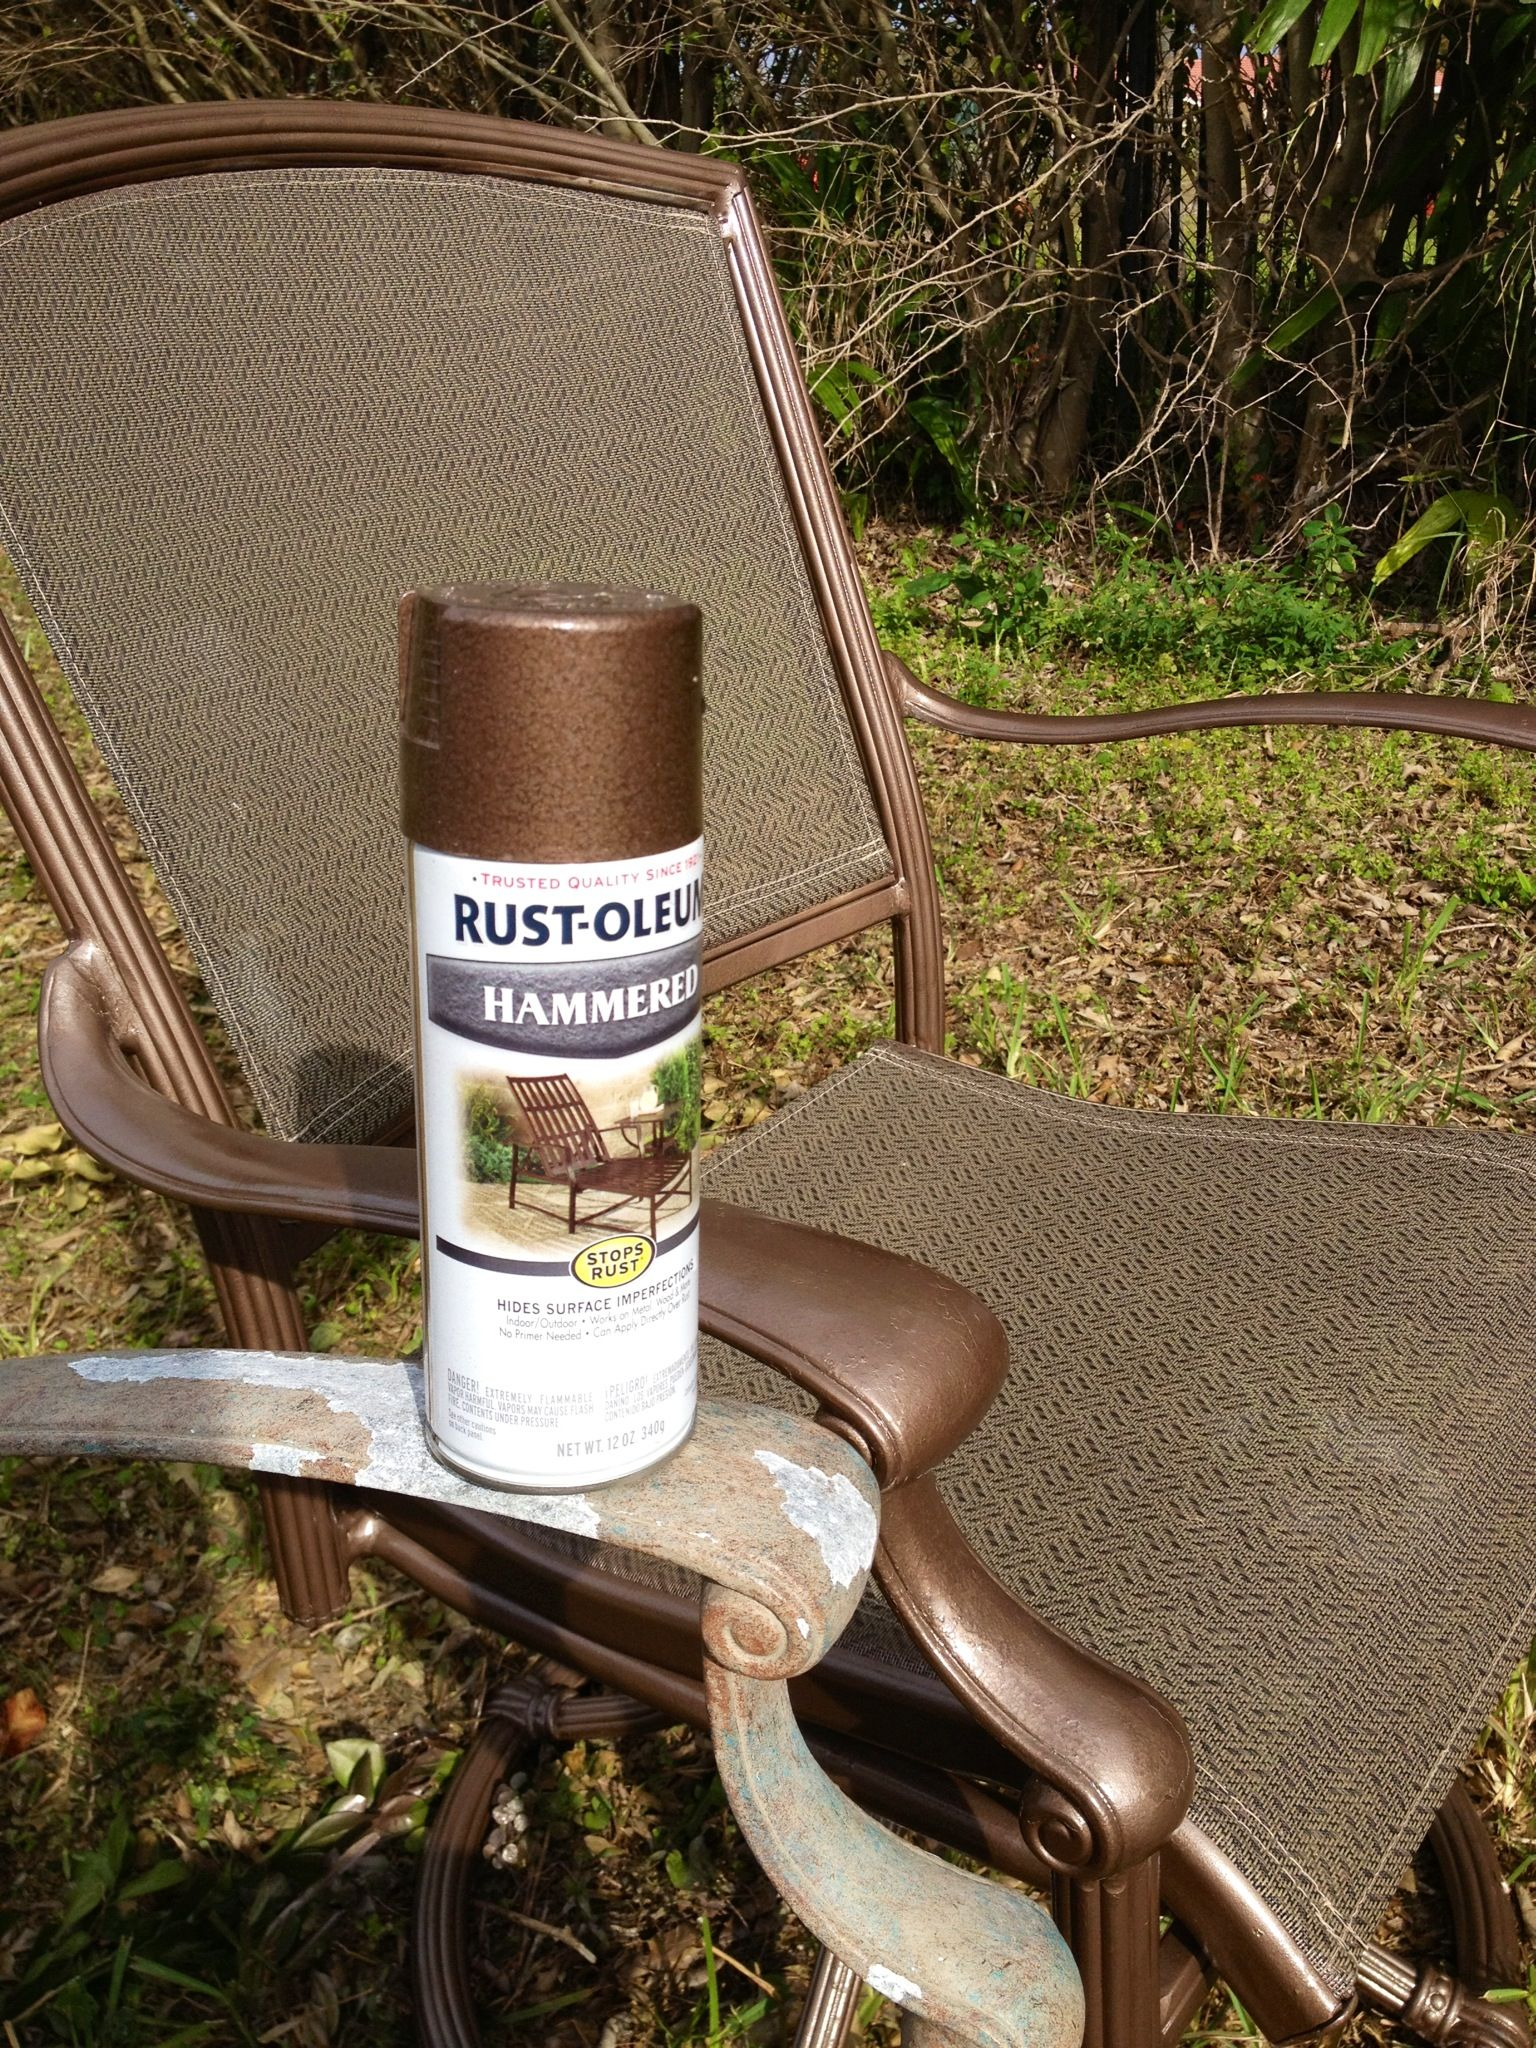 Rustoleum Hammered Metallic Spray Paint For My Upcycled